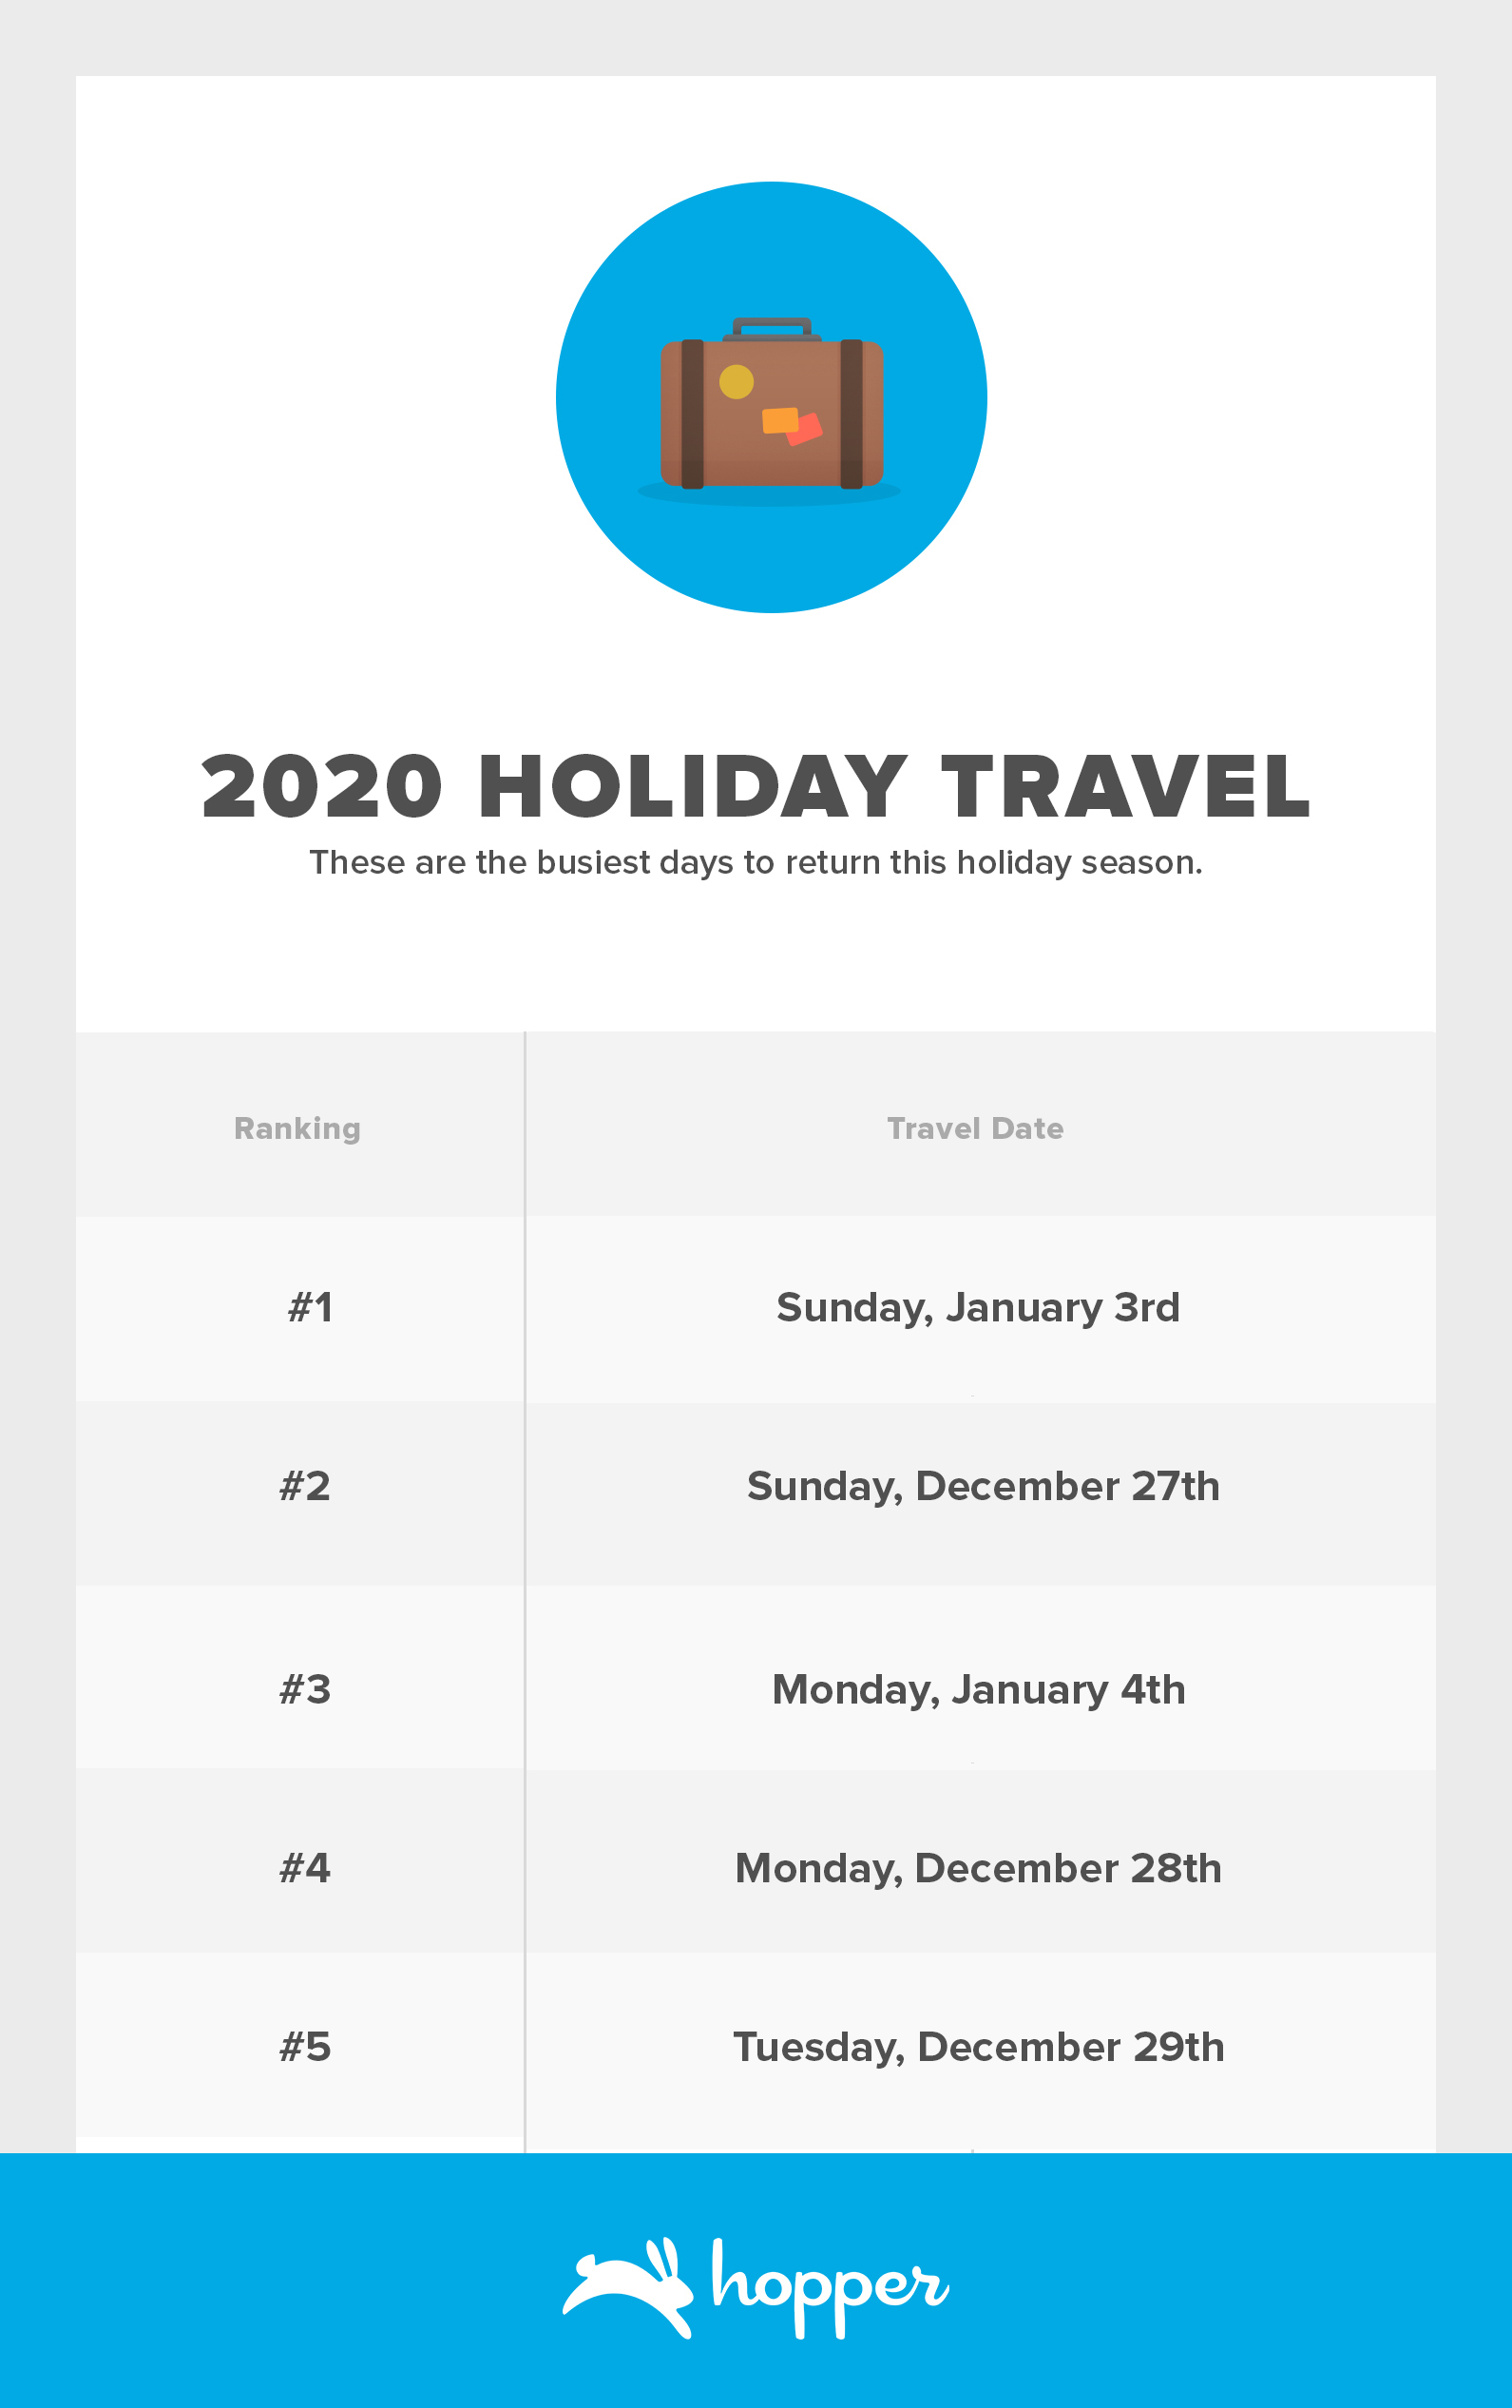 2020 Holiday Travel Returns